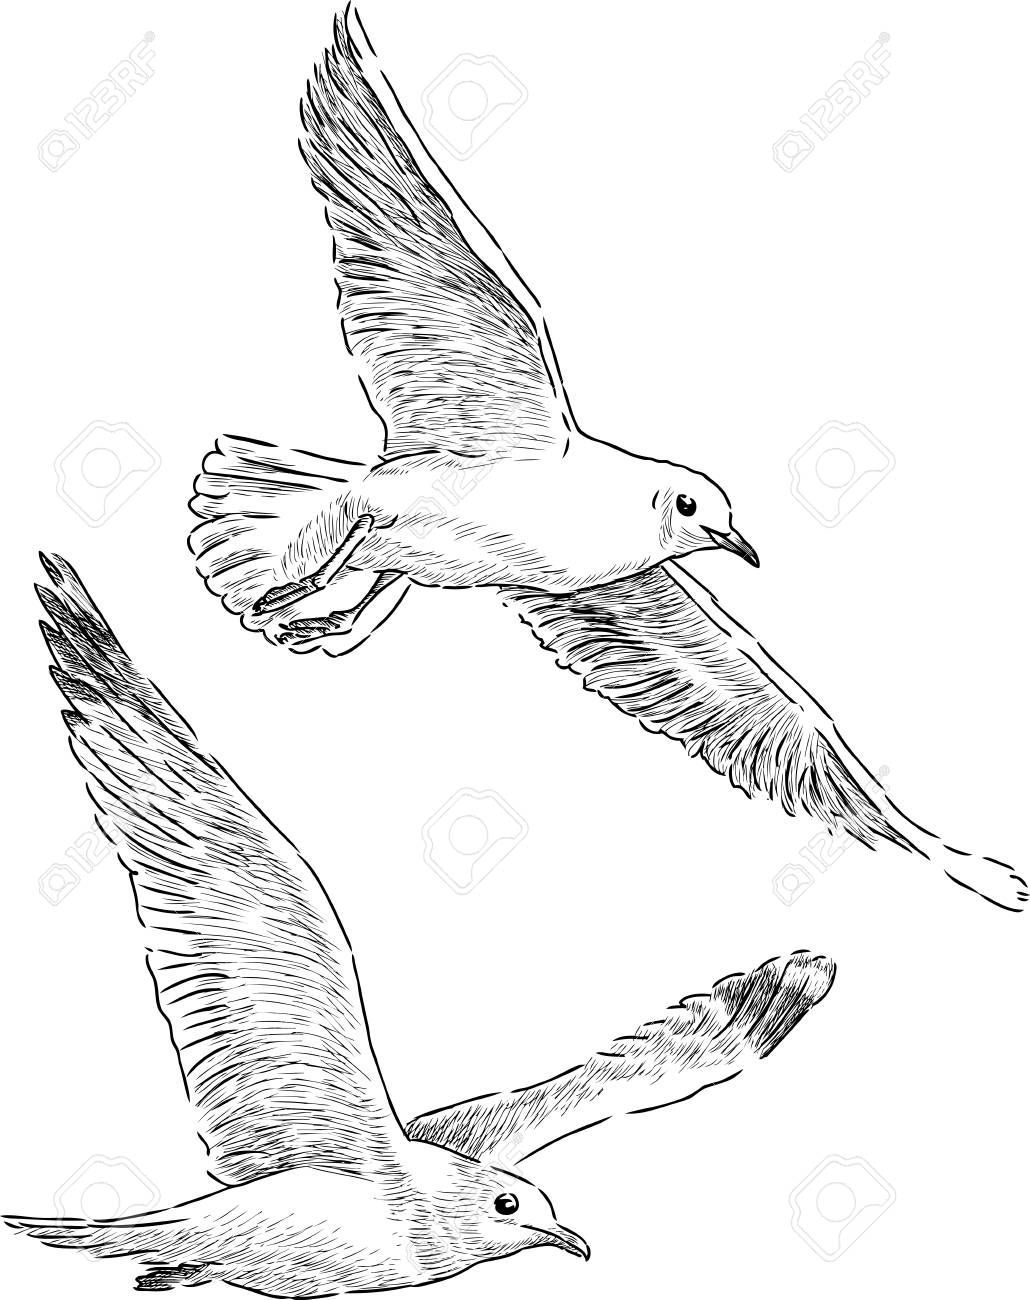 Hand Drawing Of The Seagulls In Flight Ad Drawing Hand Flight Seagull Drawing Flight Hand Seagu Bird Drawings Fly Drawing Seagull Tattoo